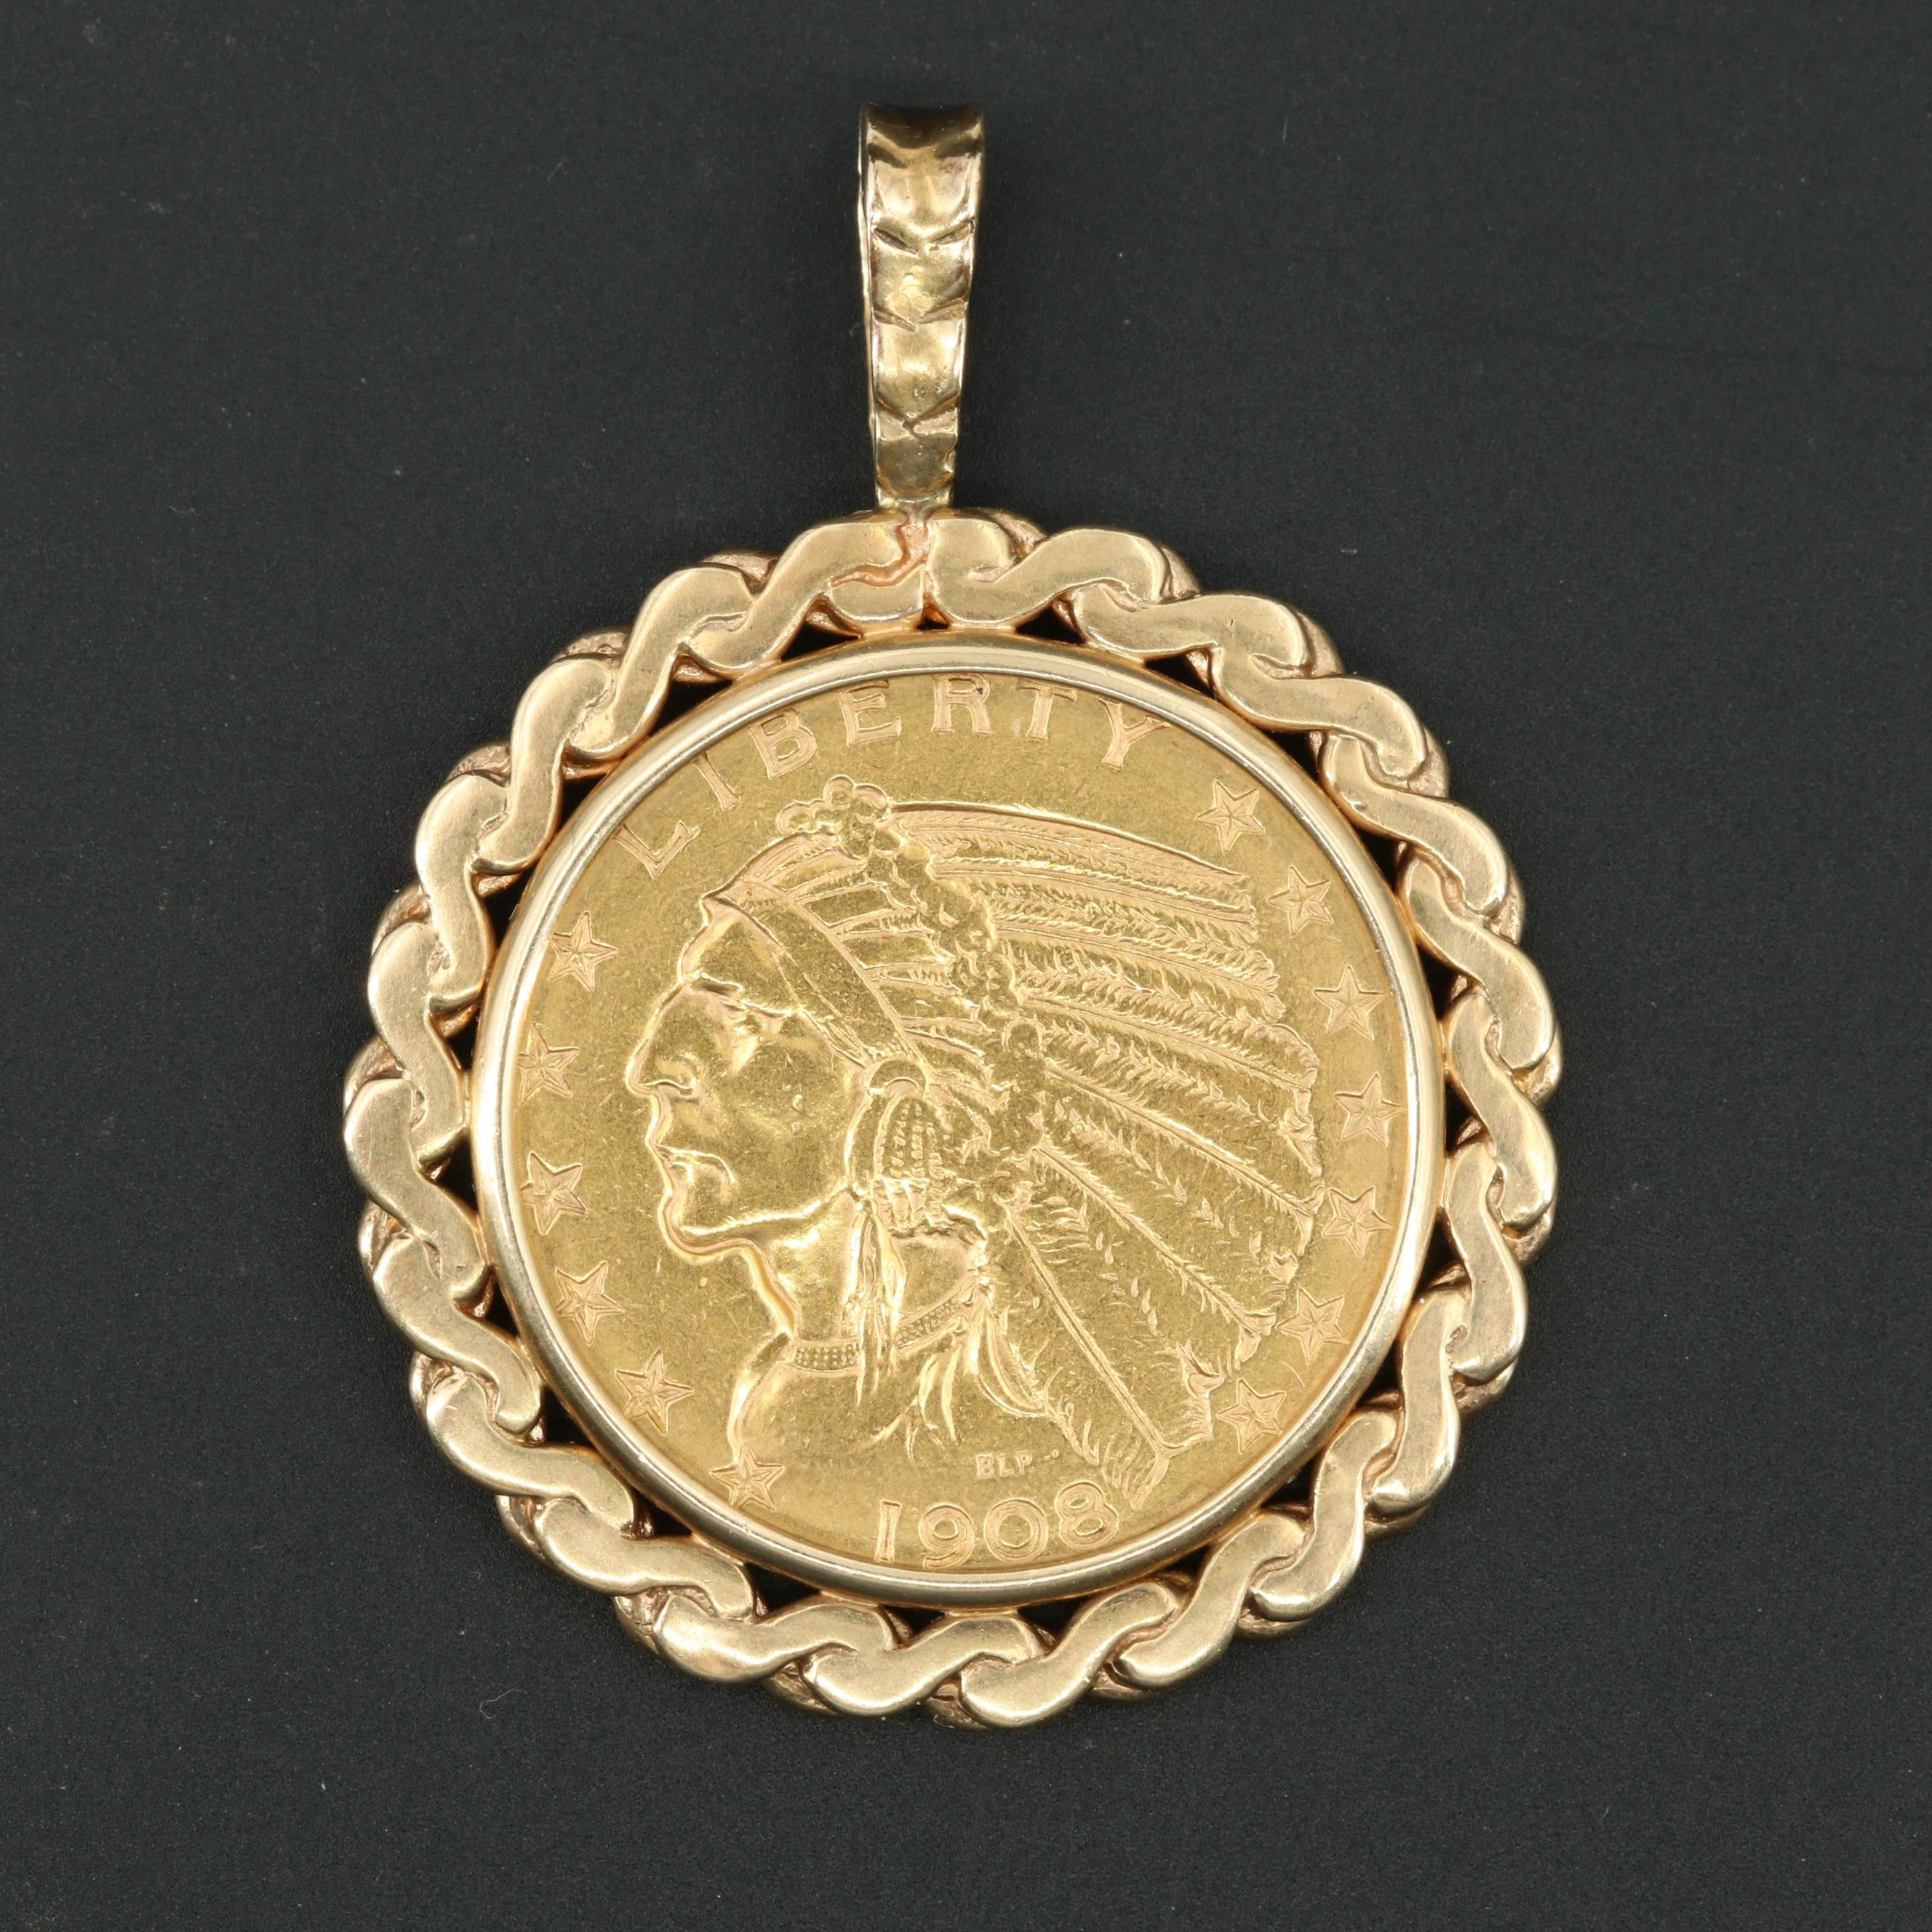 1908-D Indian Head $5 Gold Coin Pendant